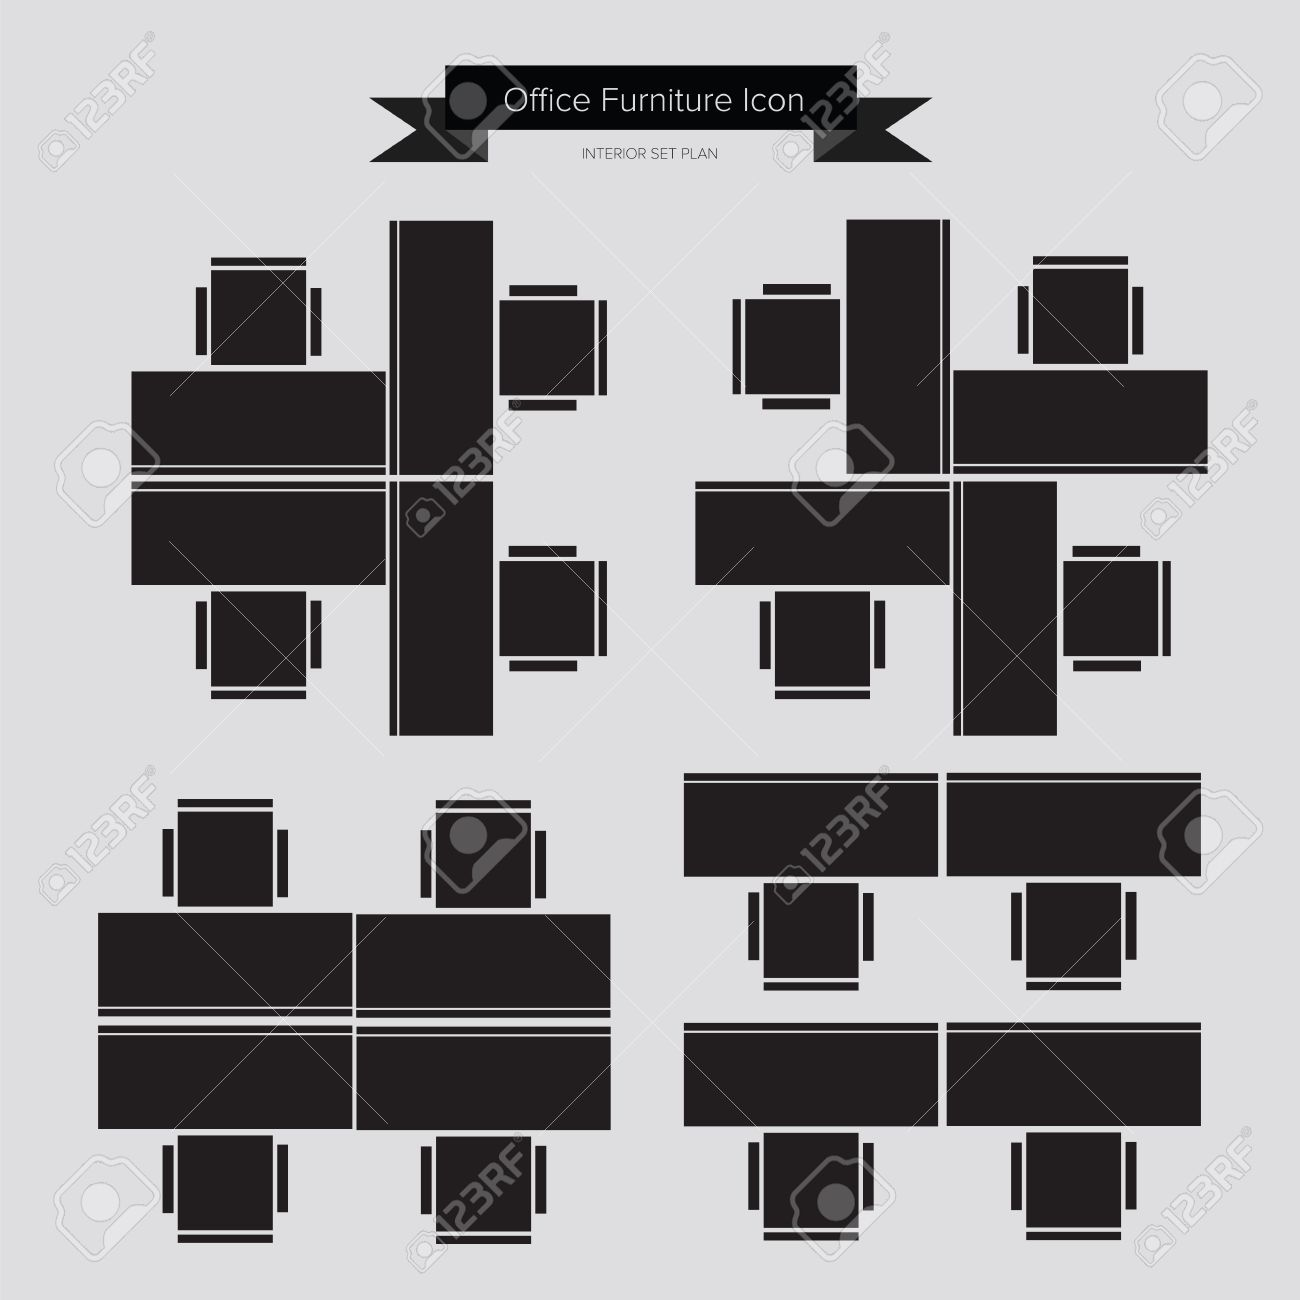 Office furniture top view - Office Furniture Icon Top View For Interior Plan Stock Vector 31734604